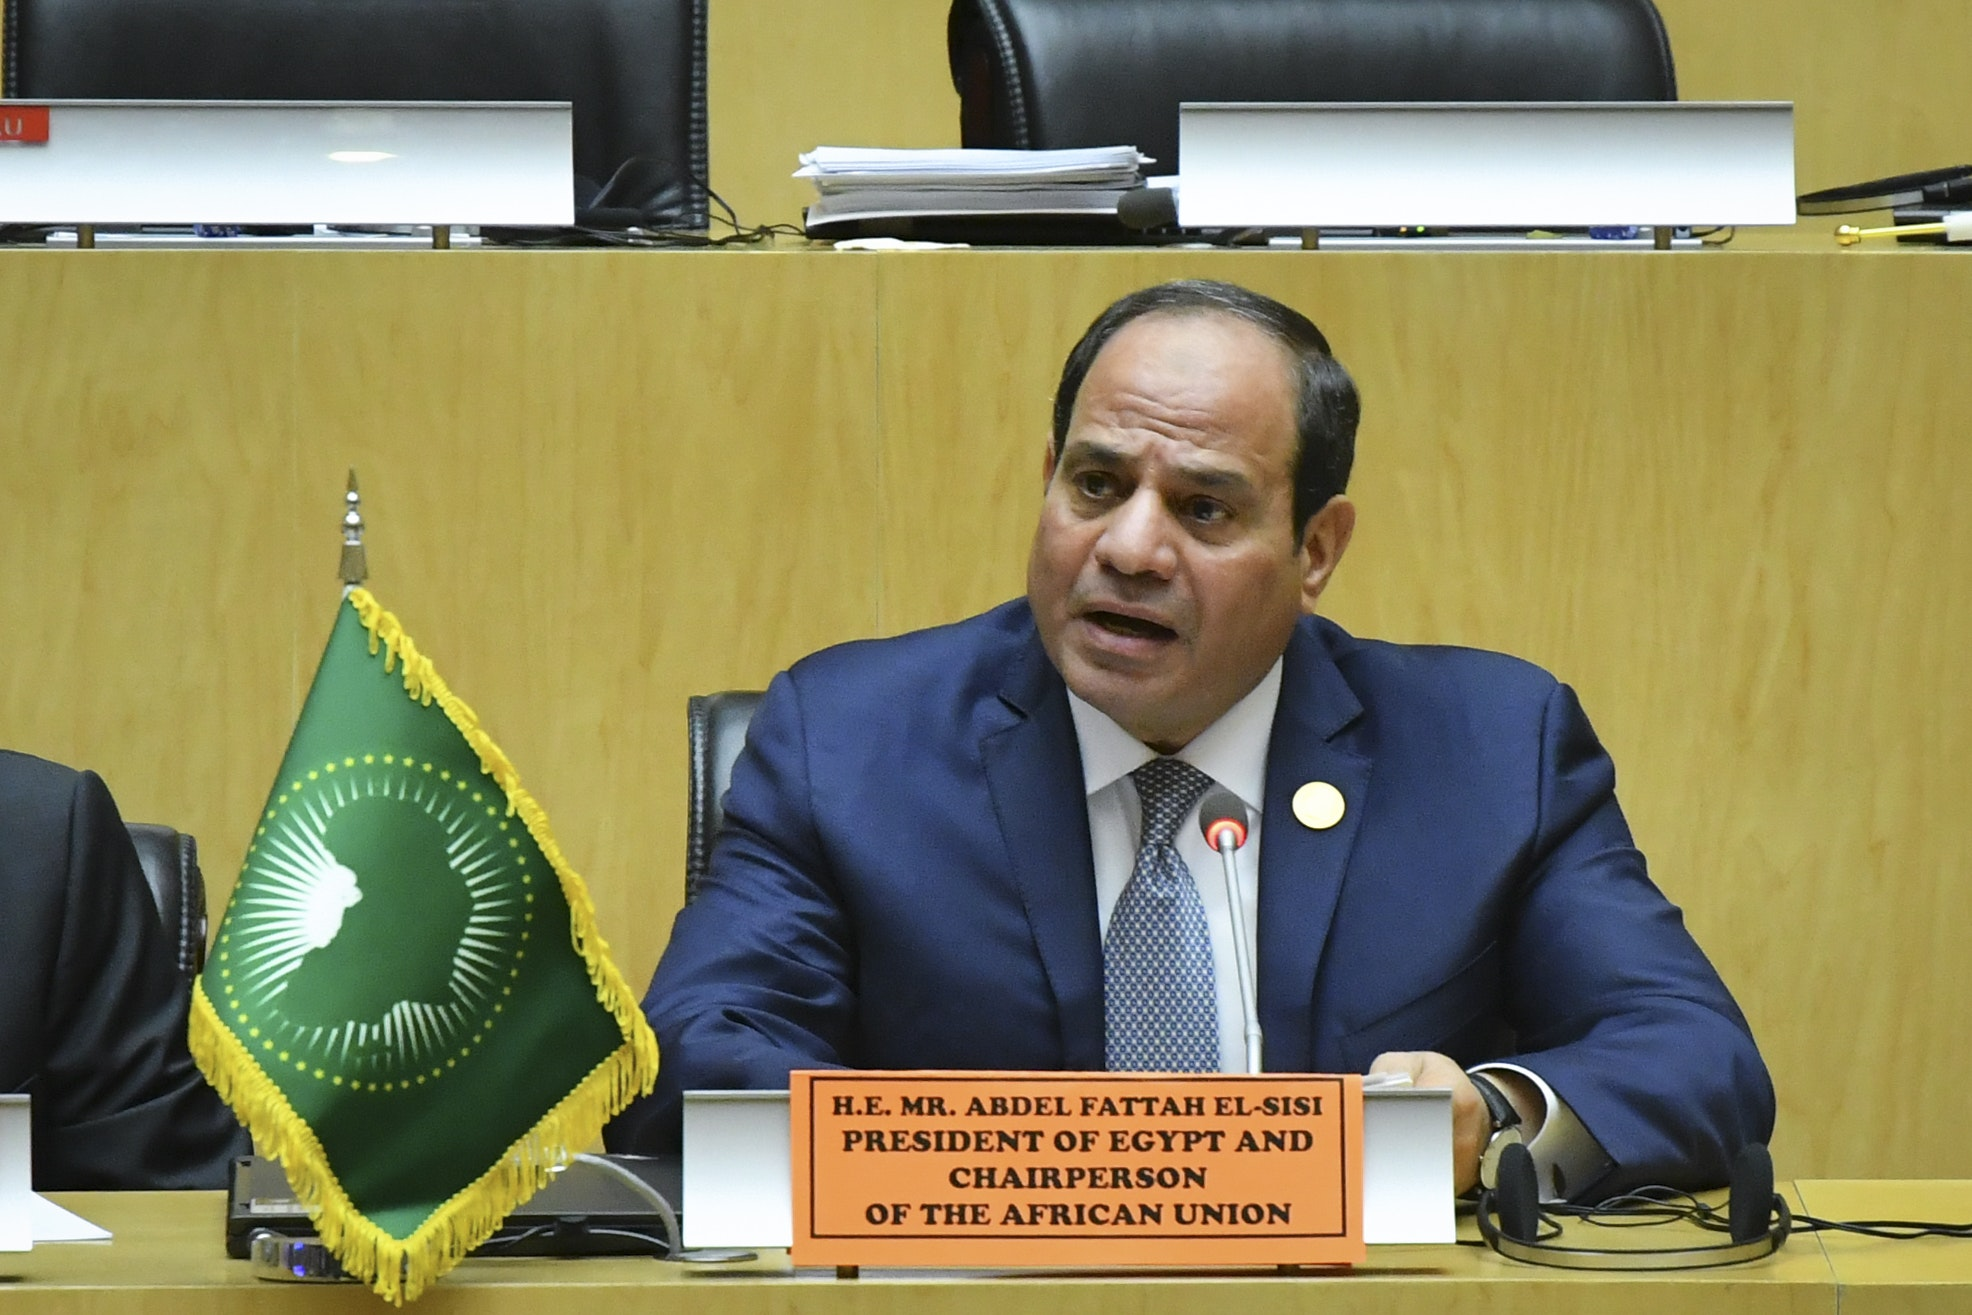 Egypt's term as AU chair mustn't distract from its human rights failings